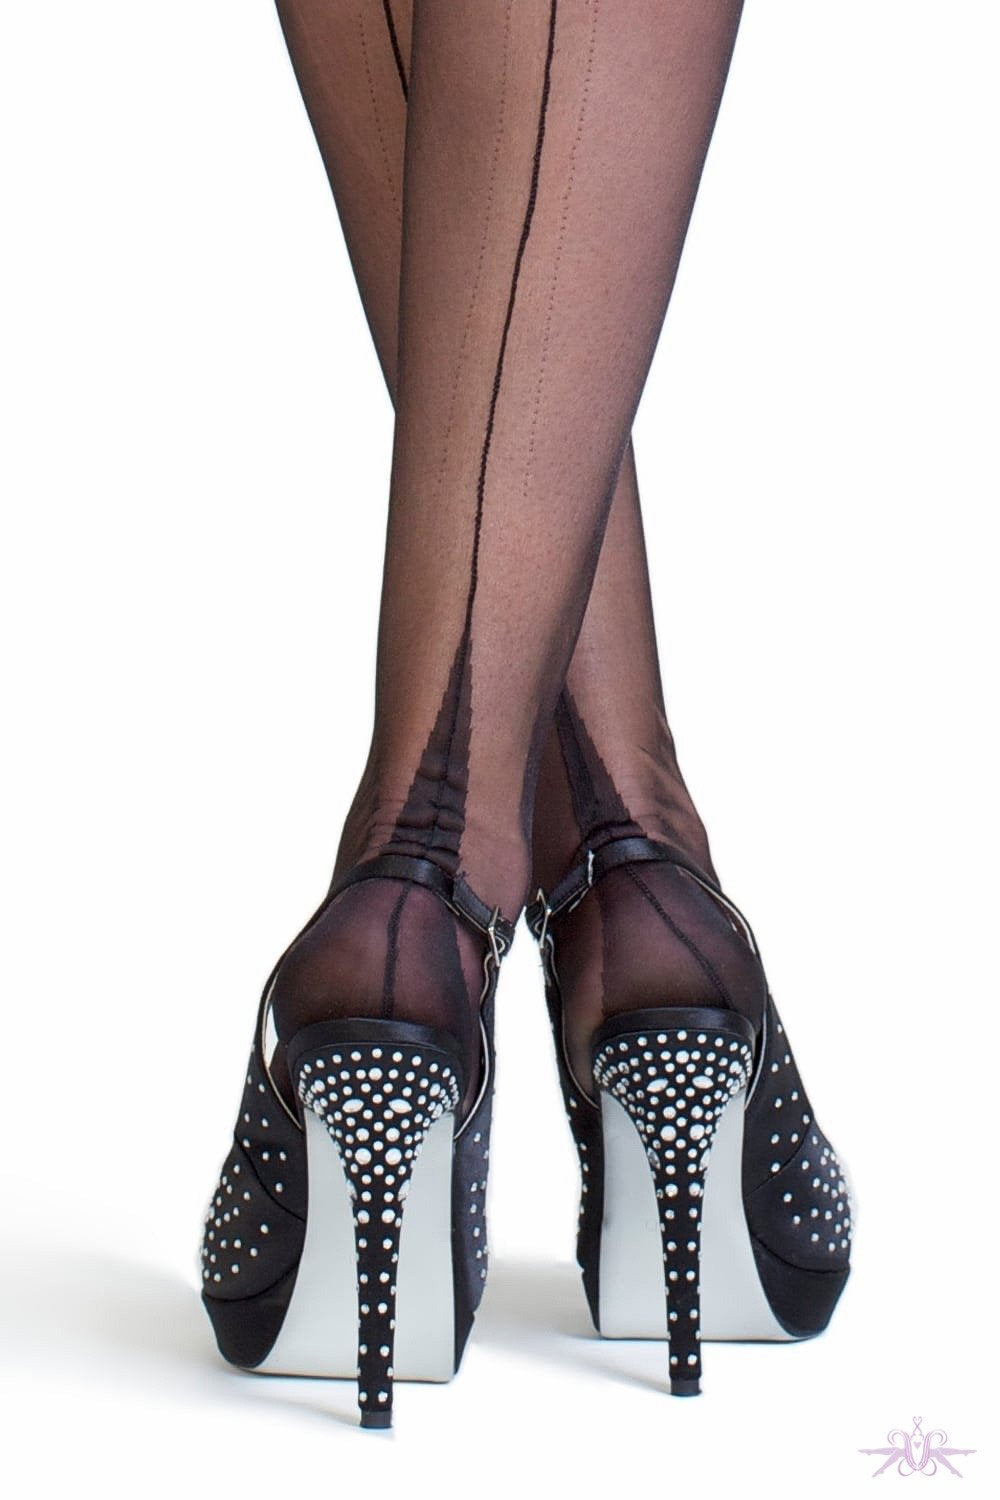 Gio Point Heel Fully Fashioned Stockings - The Hosiery Box